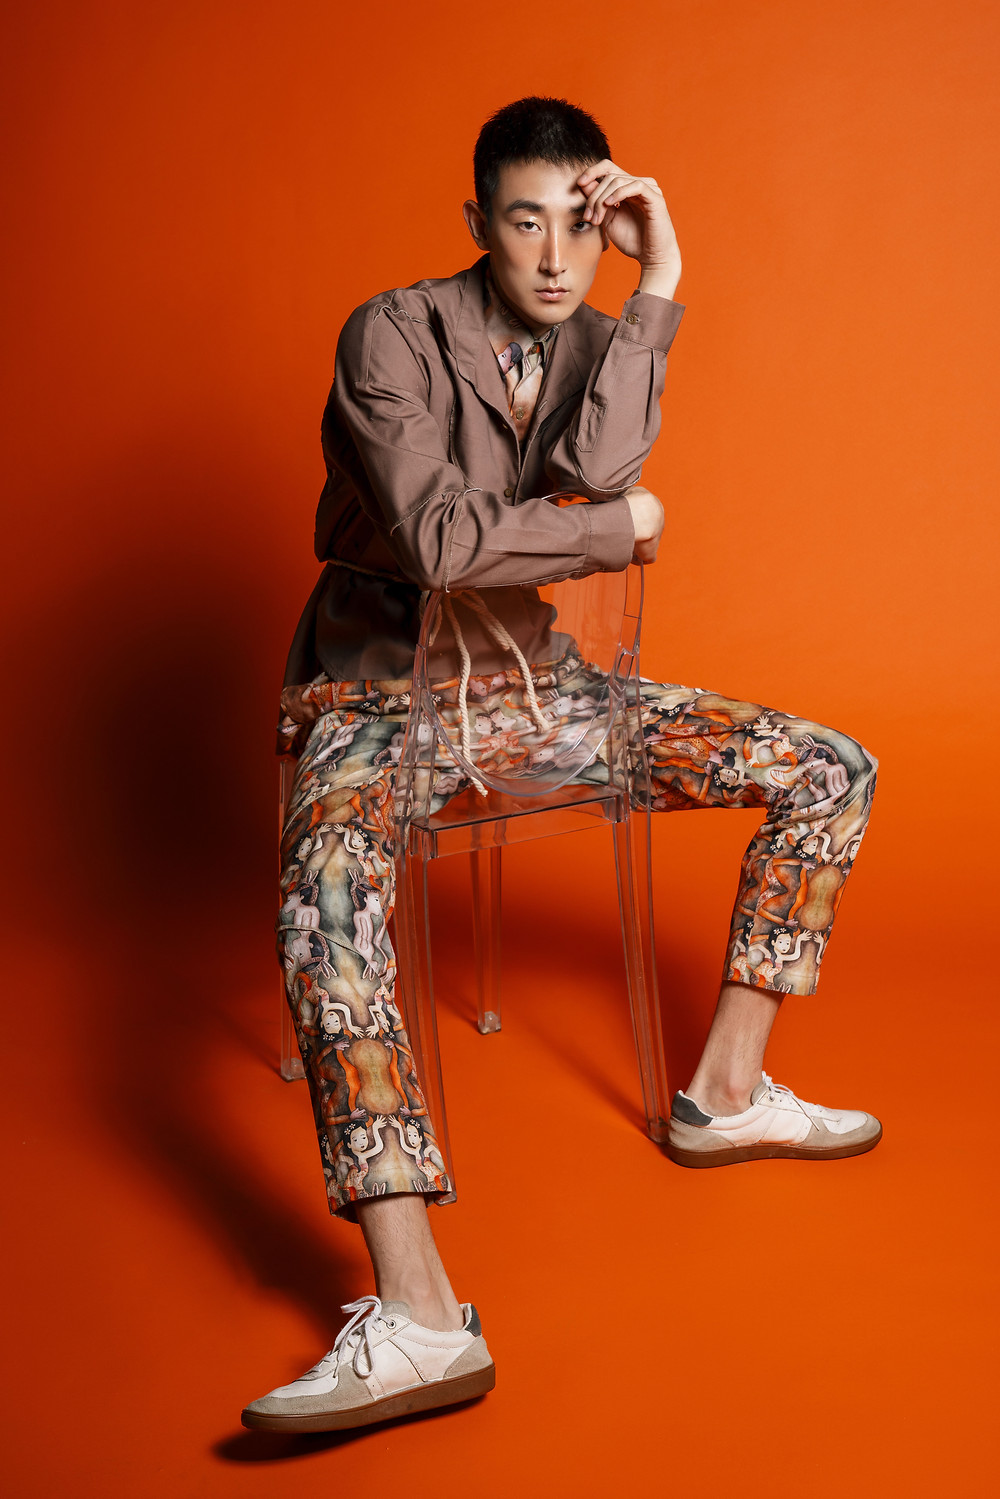 Shirt, jacket and pants from @temmaprasetio x @han_chandra GENERASI Collection, shoes by Model's Own